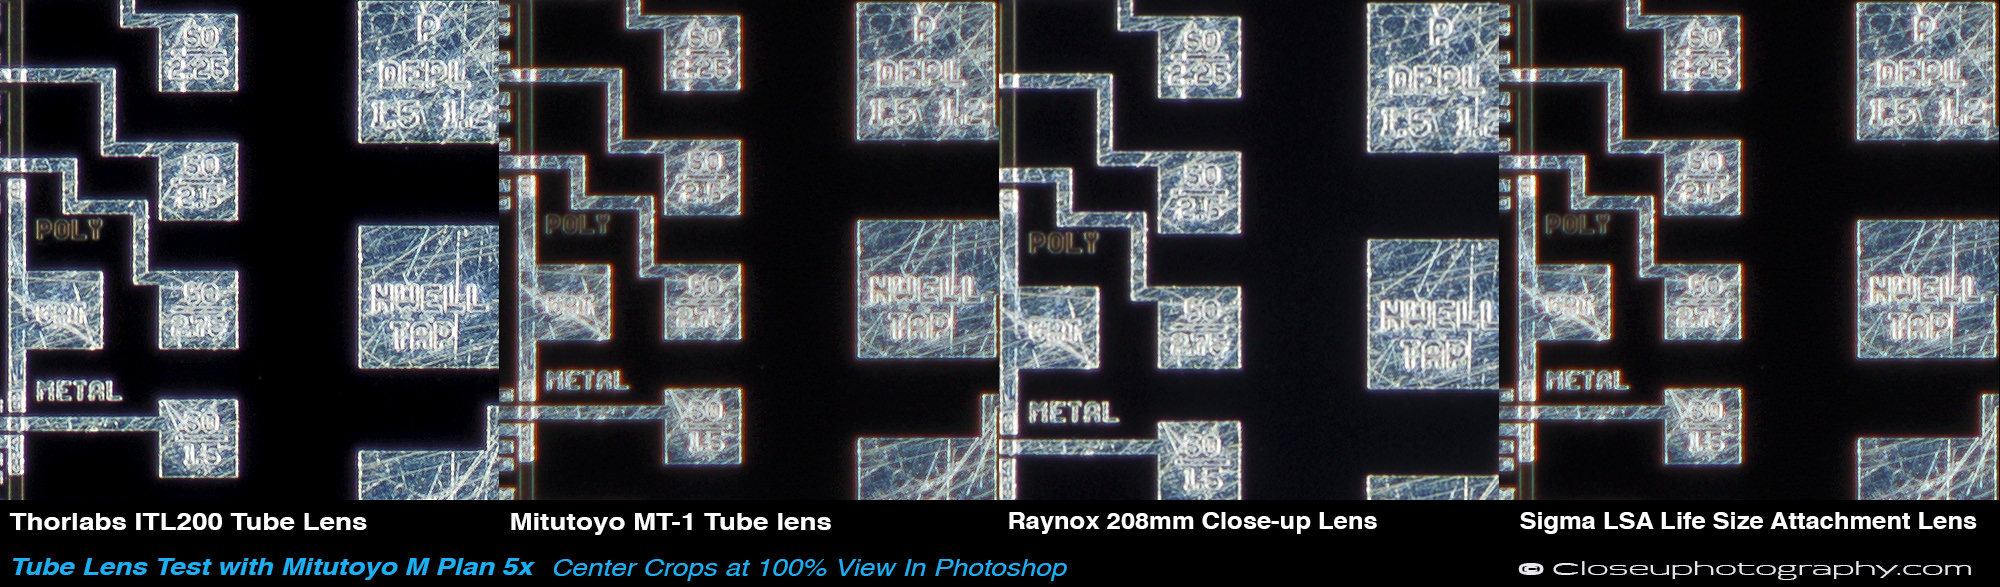 Tube-lens-test-200mm-100-percent-center-crop-with-Mitutoyo-M-Plan-5x-Closeuphotography.jpg